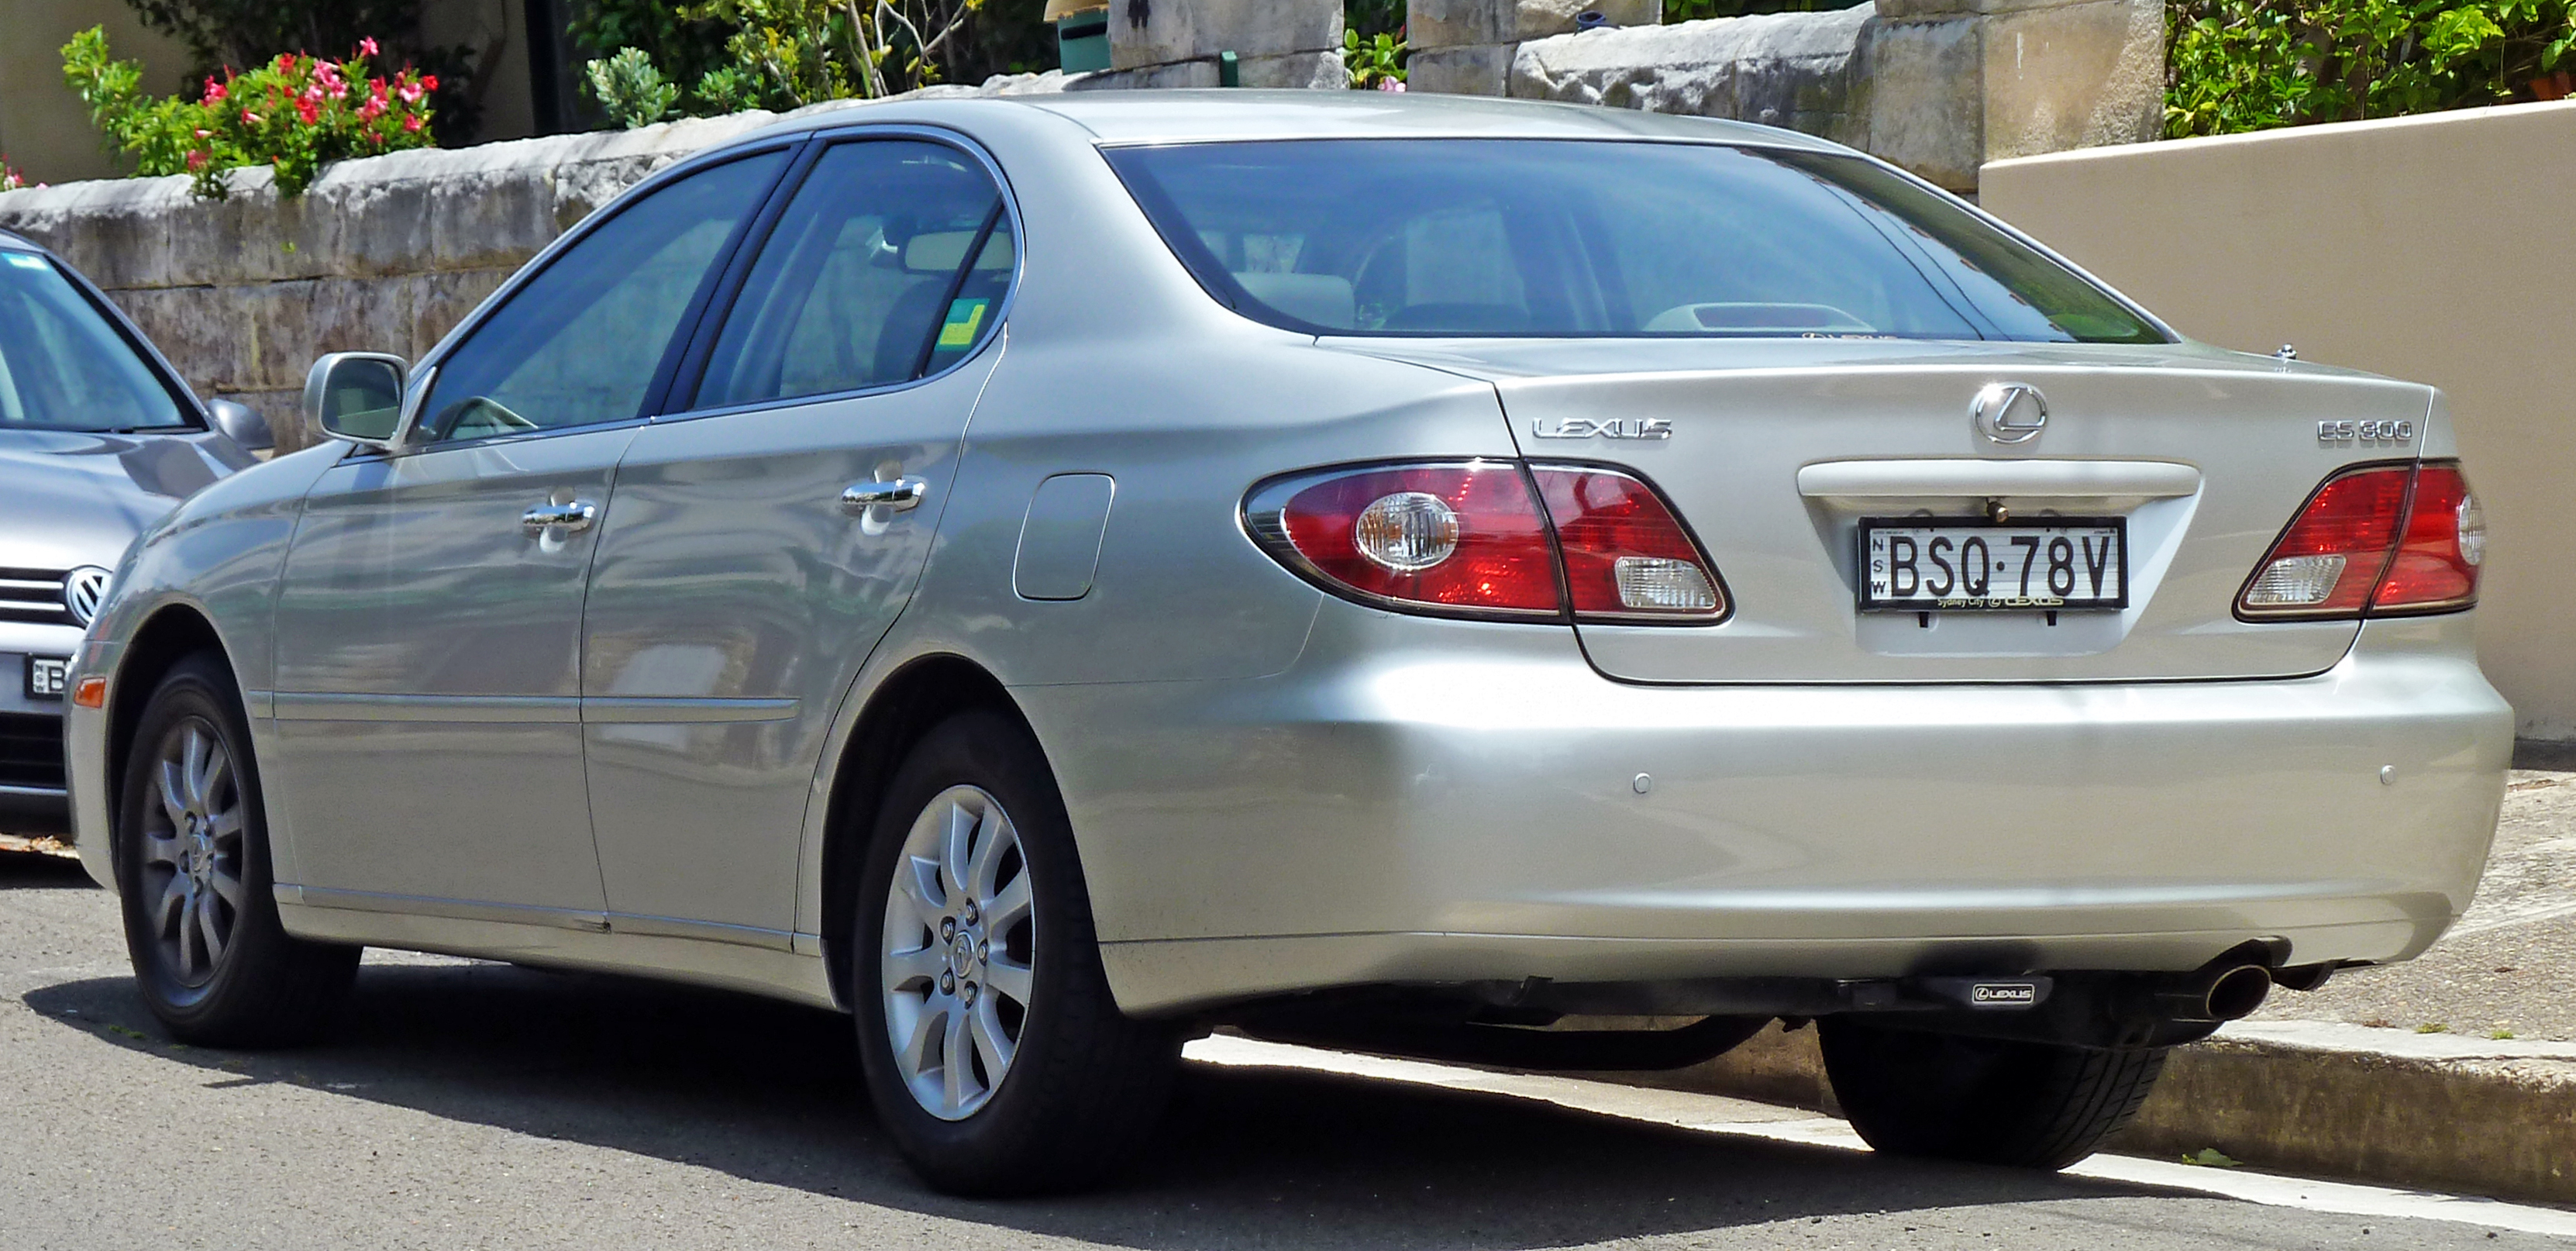 High Quality File:2003 Lexus ES 300 (MCV30R) Sedan (2011 01 05